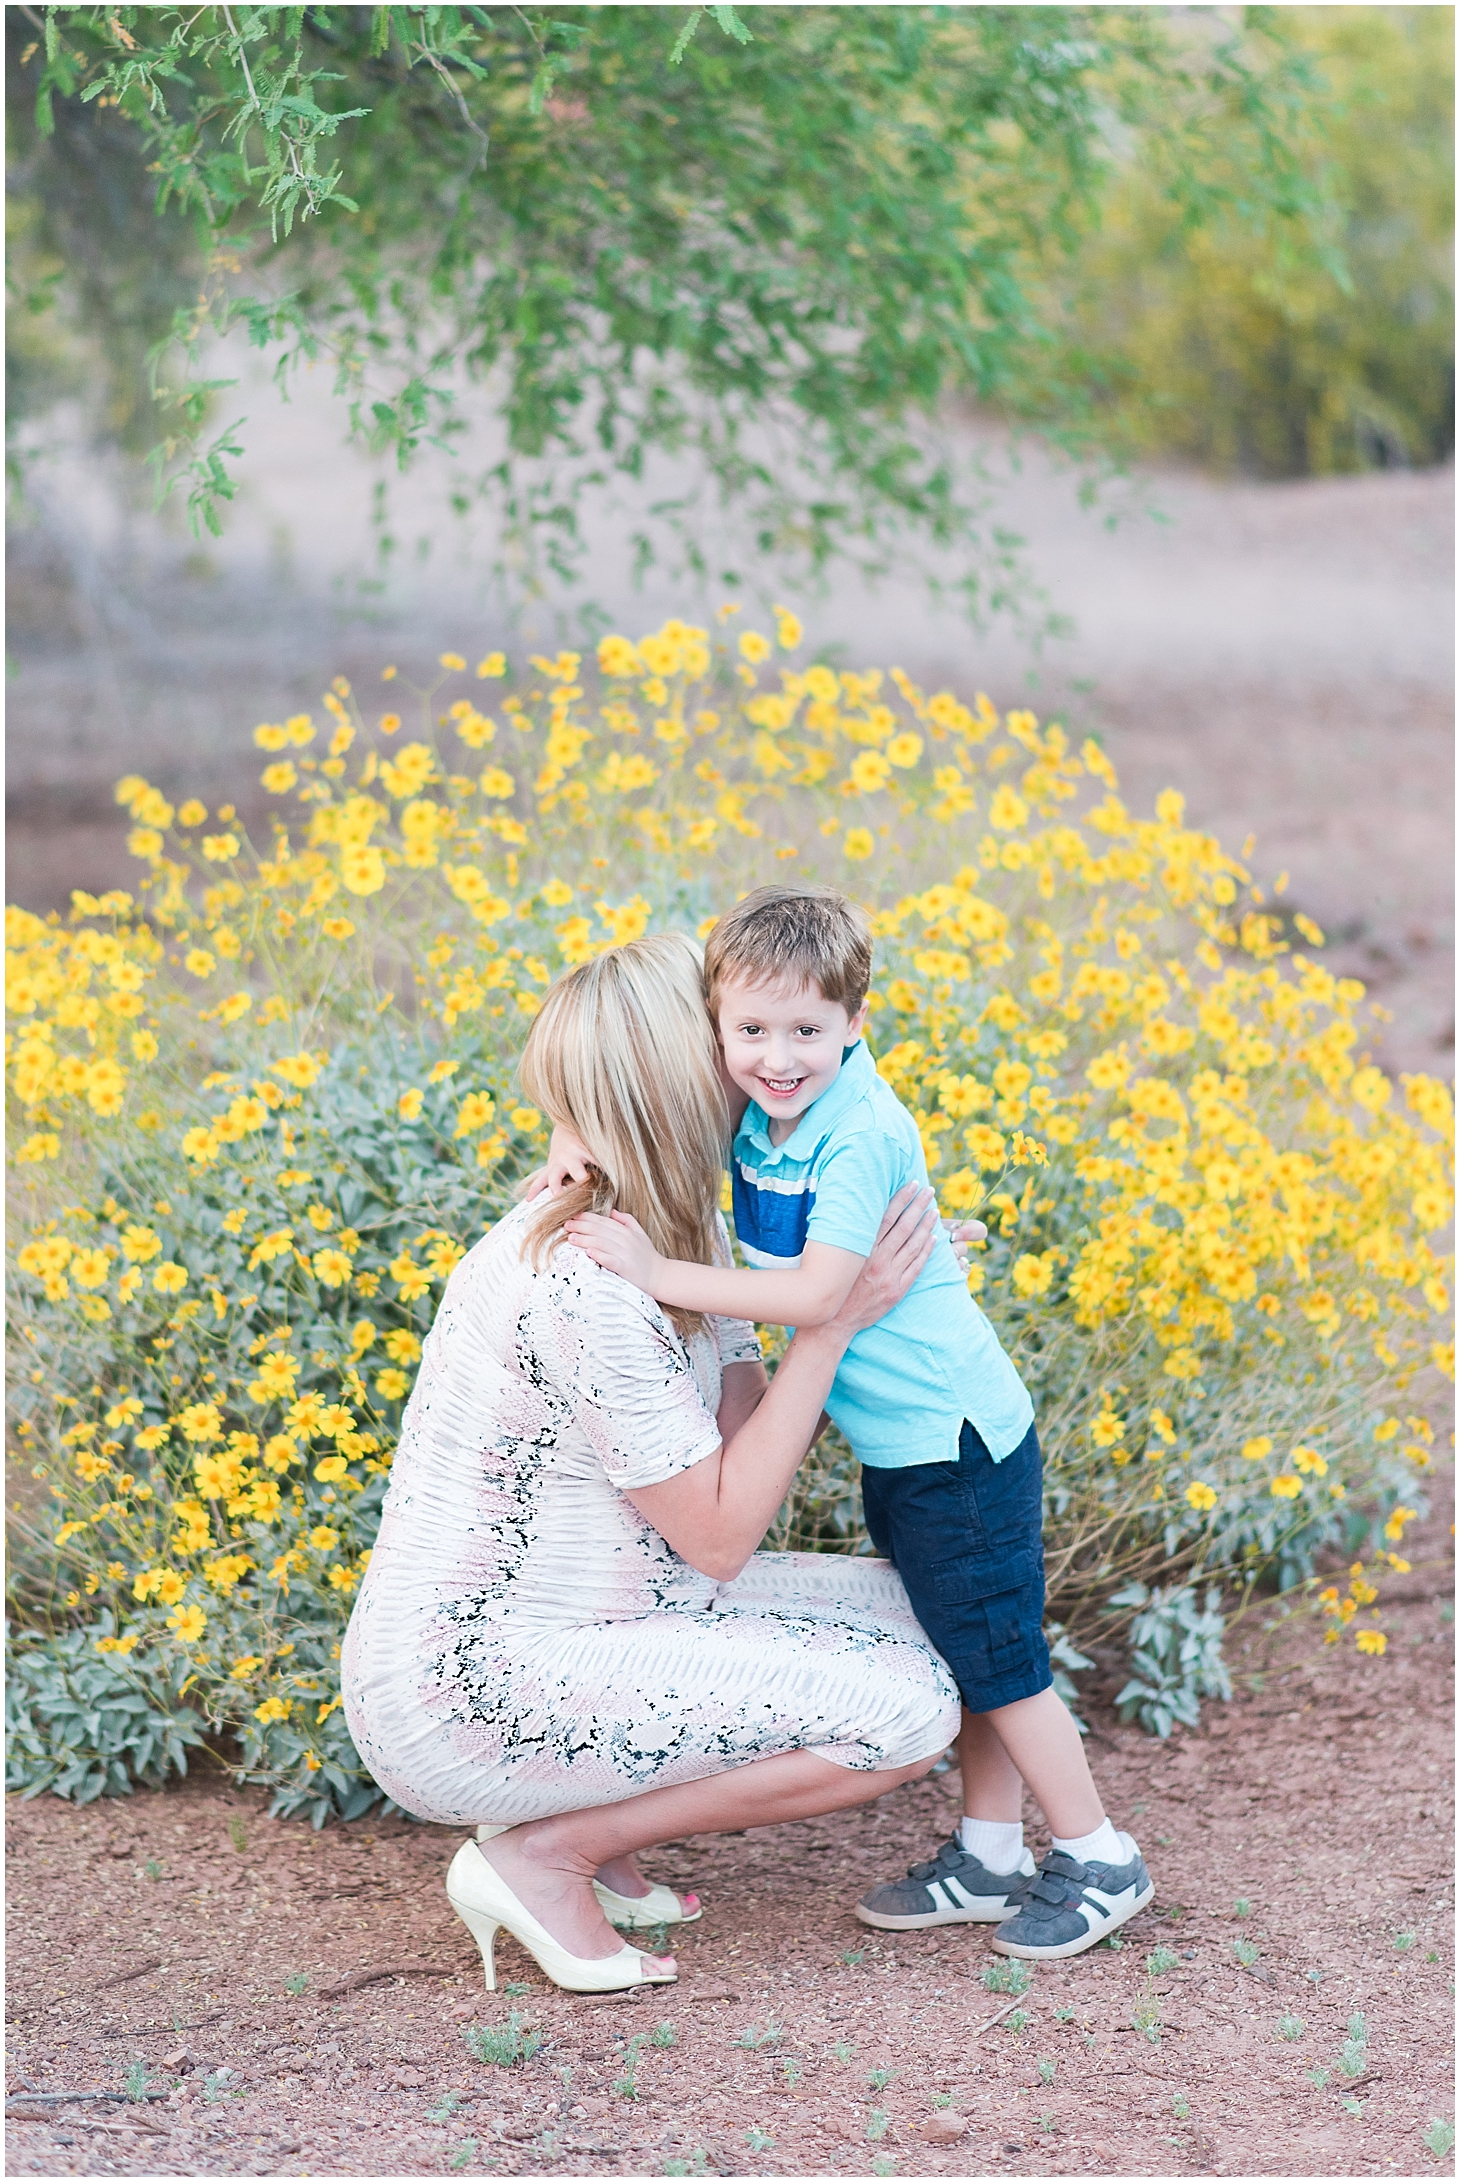 Mihlik maternity session at Papago Park in Phoenix, Arizona. Photo taken by Jade Min Photography.